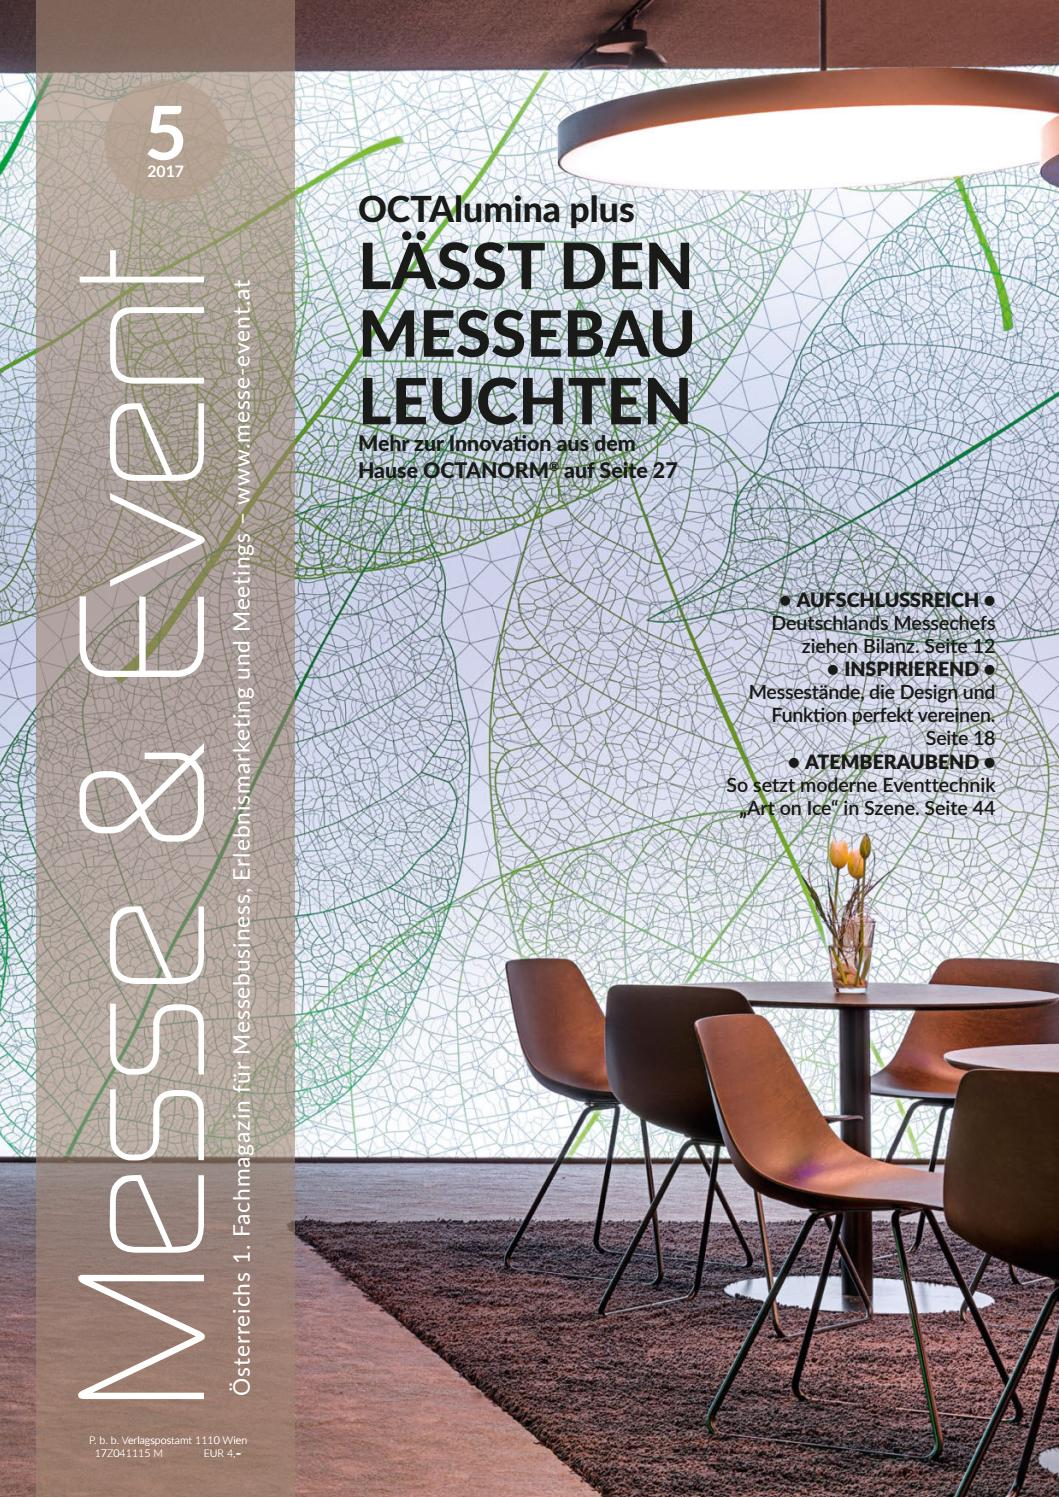 Messe & Event 5/2017 by Messe & Event Magazin - issuu